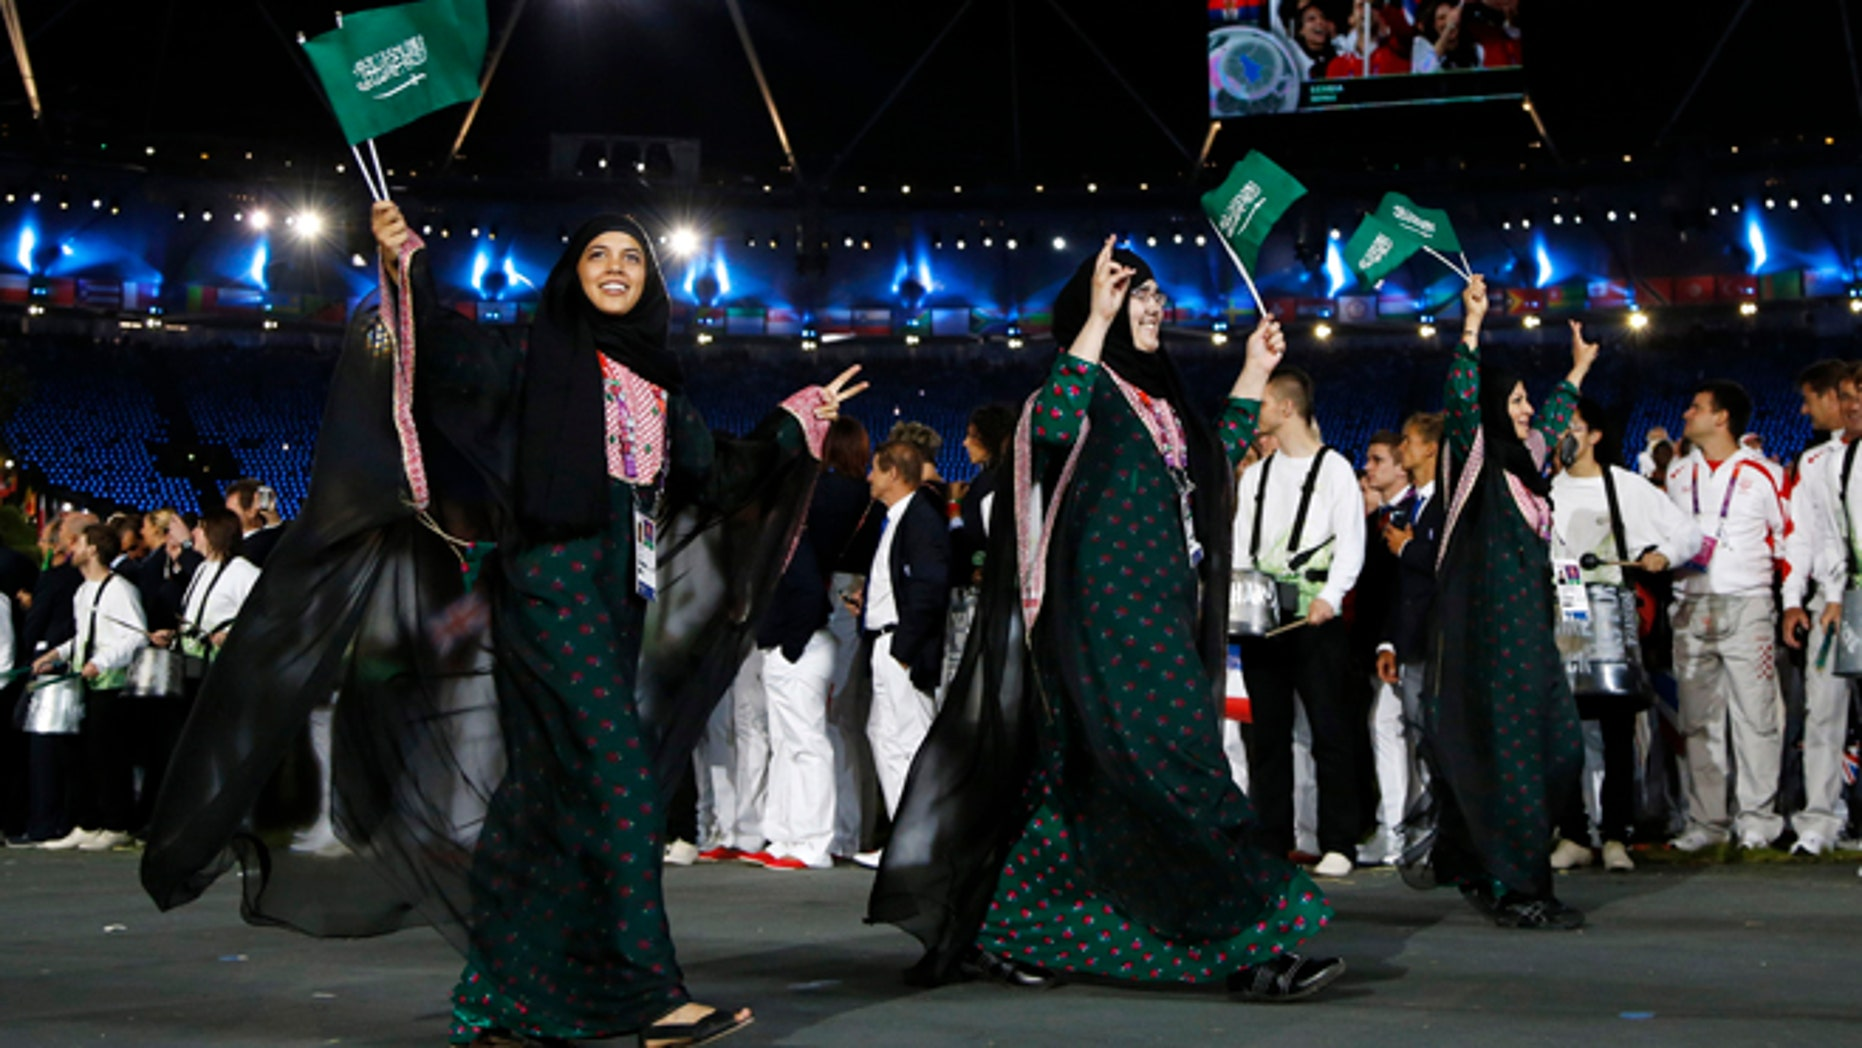 July 27, 2012: Saudi Arabia's athletes parade, Wojdan Ali Seraj Abdulrahim Shaherkani , center, during the Opening Ceremony at the 2012 Summer Olympics, in London.